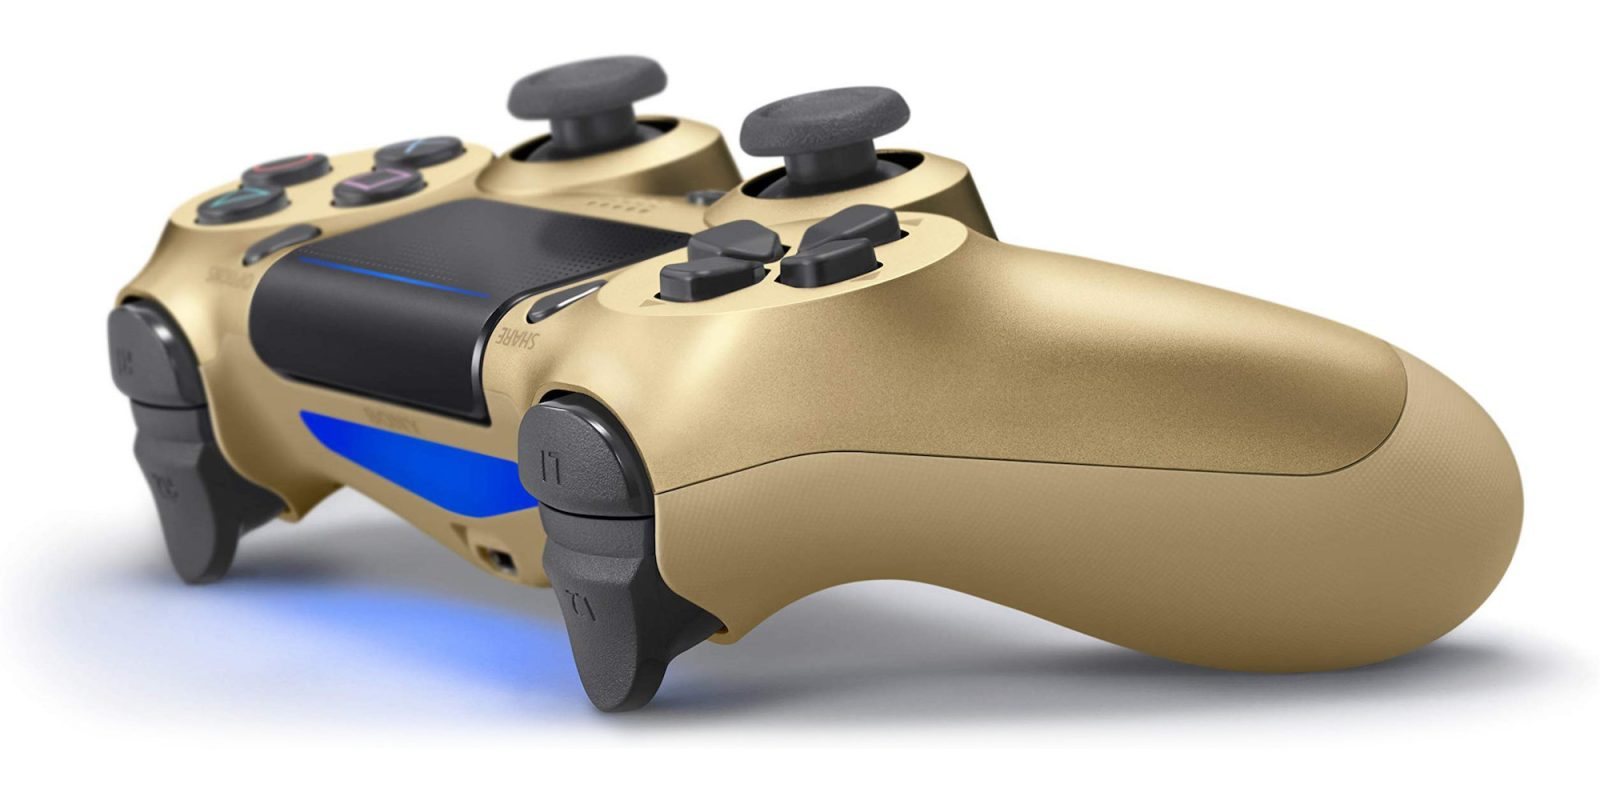 The gold DualShock 4 Controller is now down to $38 shipped (Reg. $47+), more